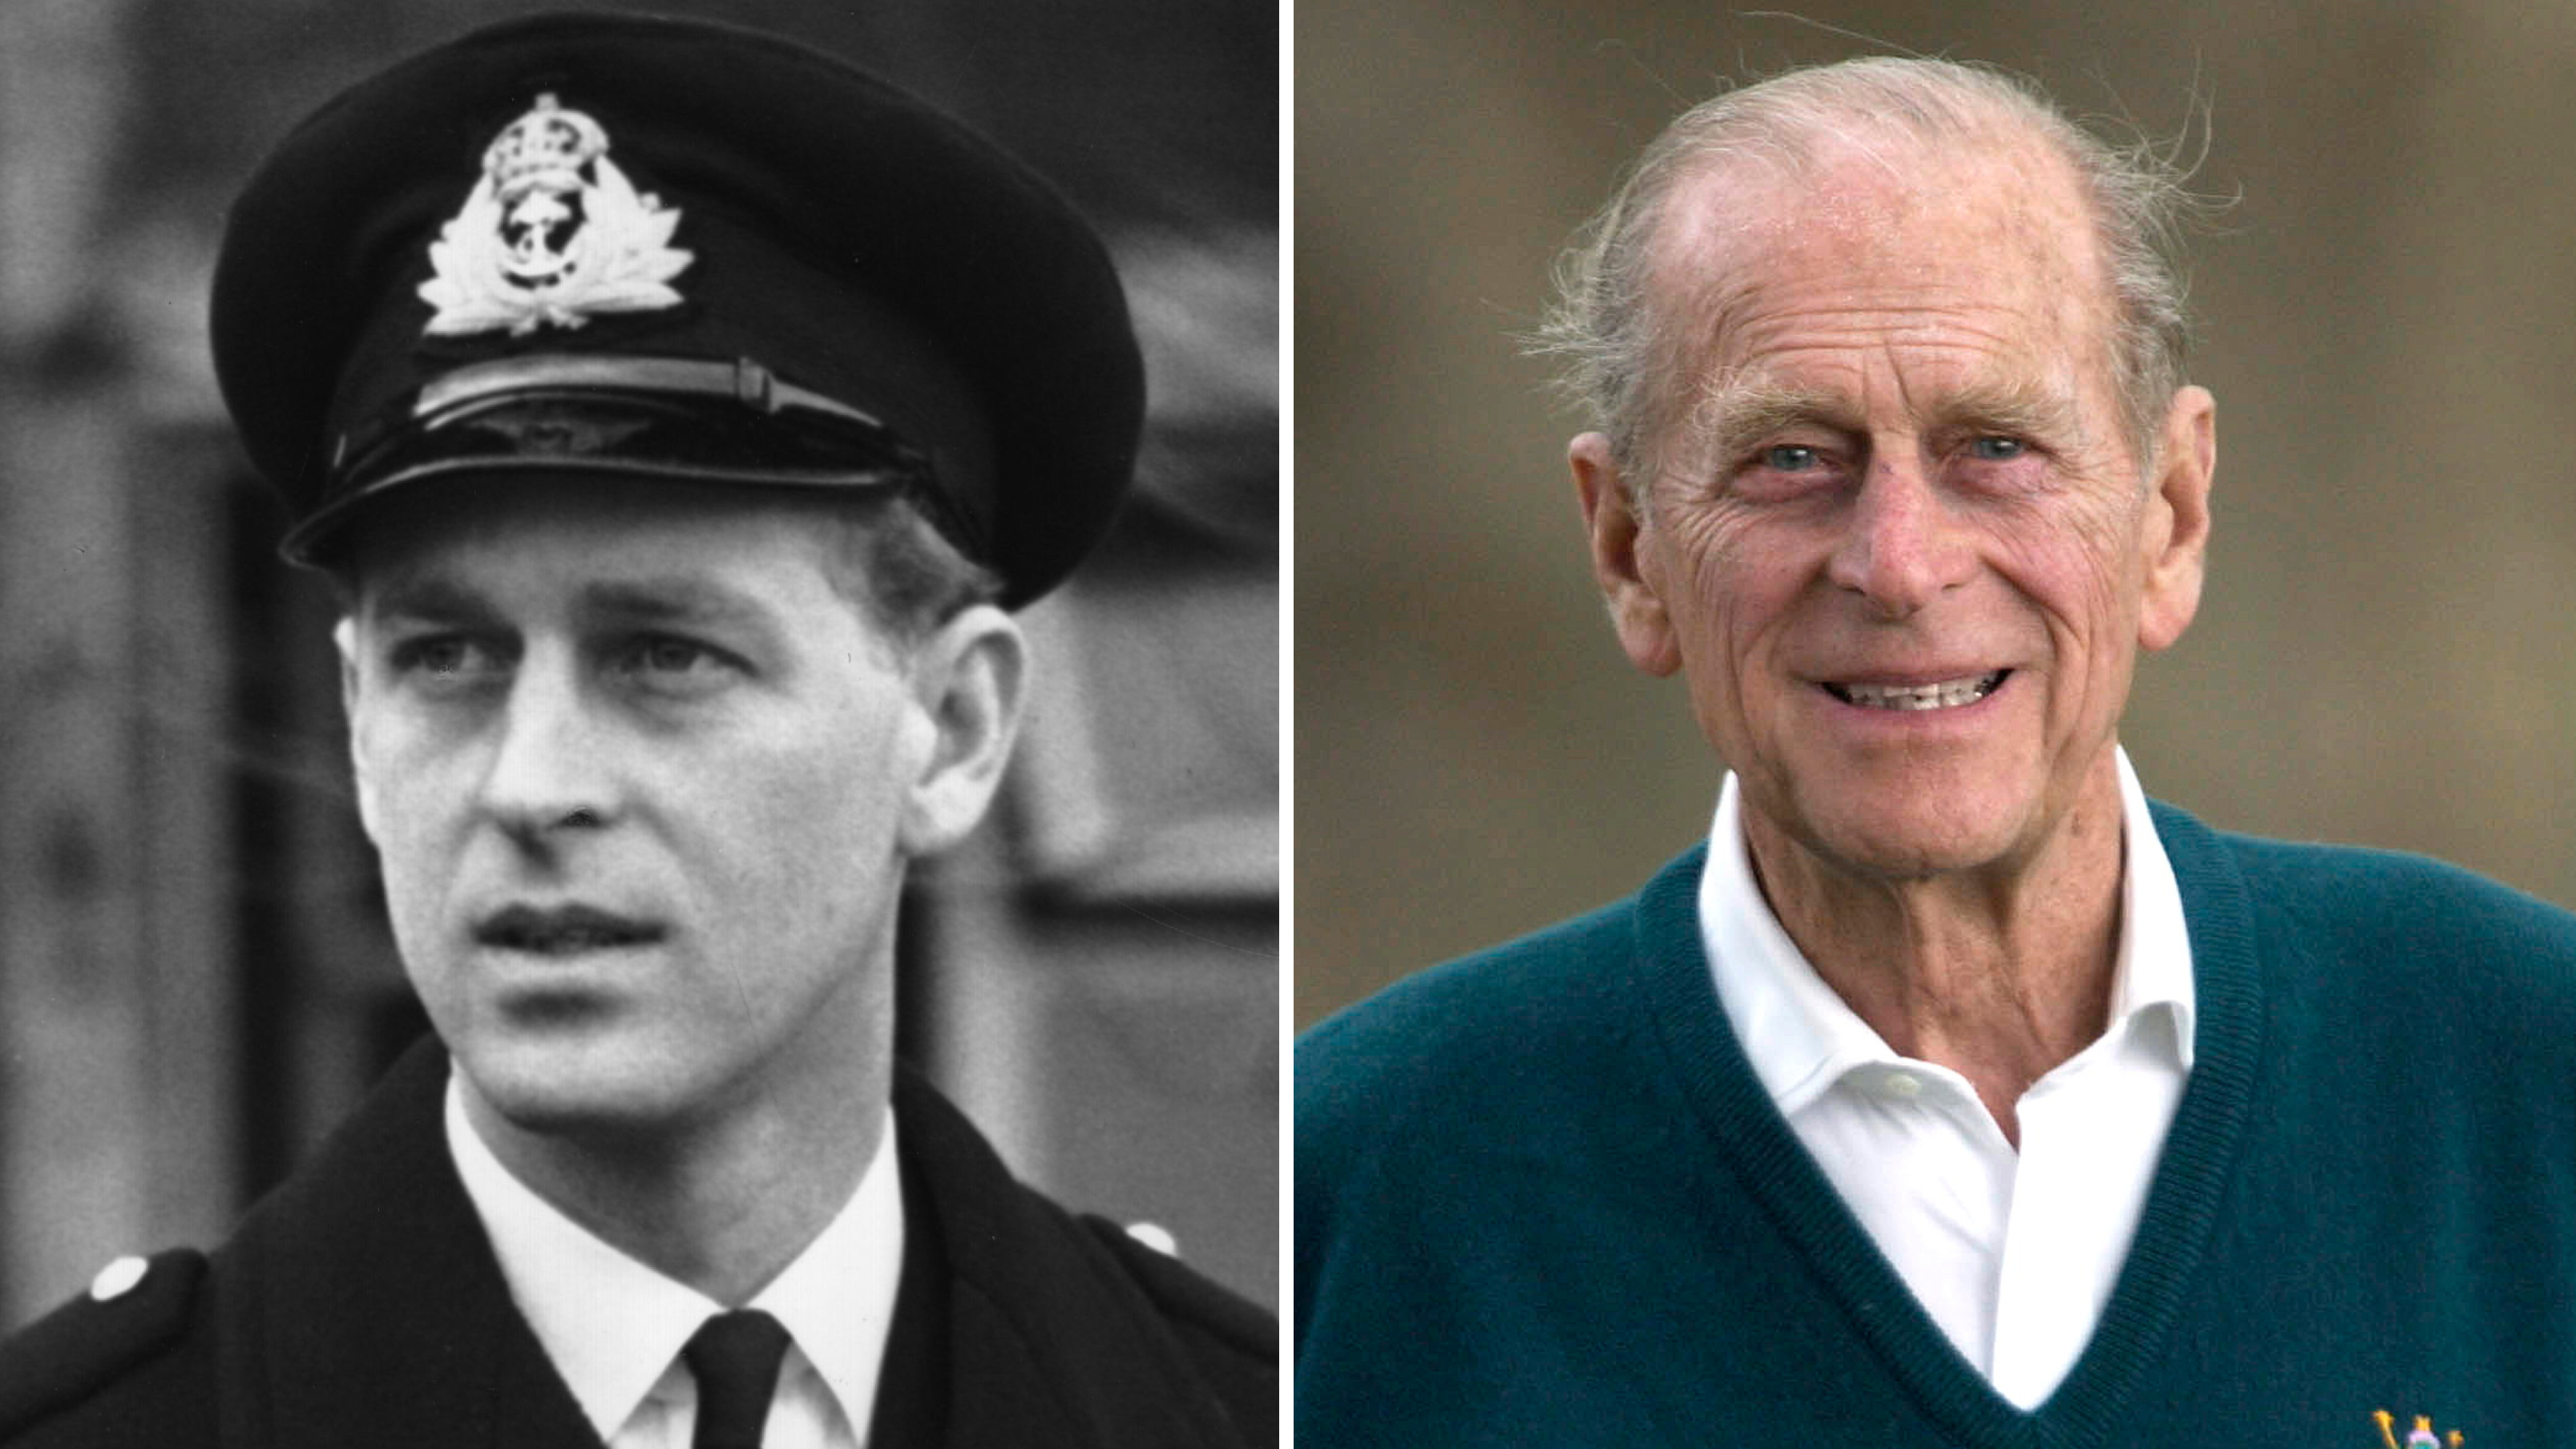 Prince Philip Young Photos See The Royal Through The Years